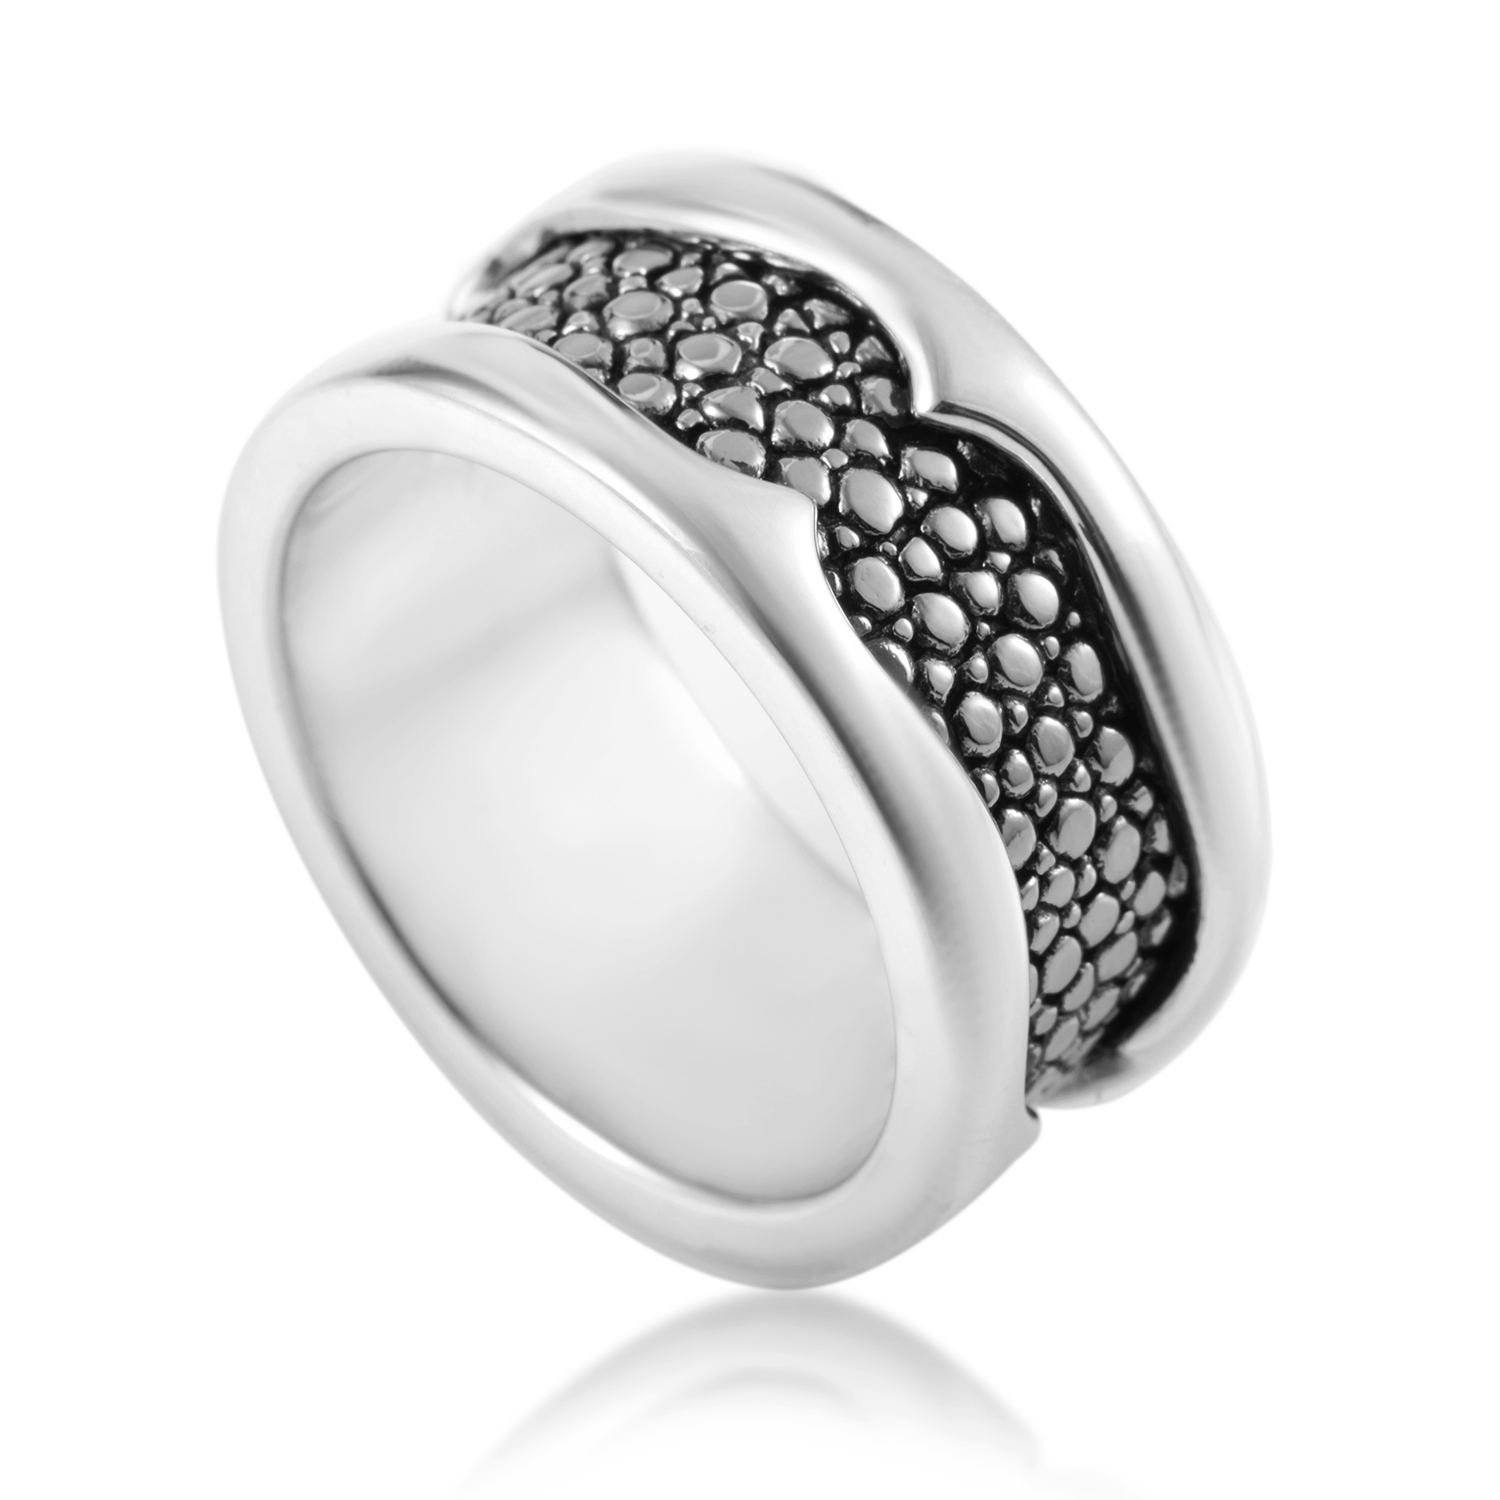 Thorn Men's Sterling Silver Rayskin Textured Band Ring